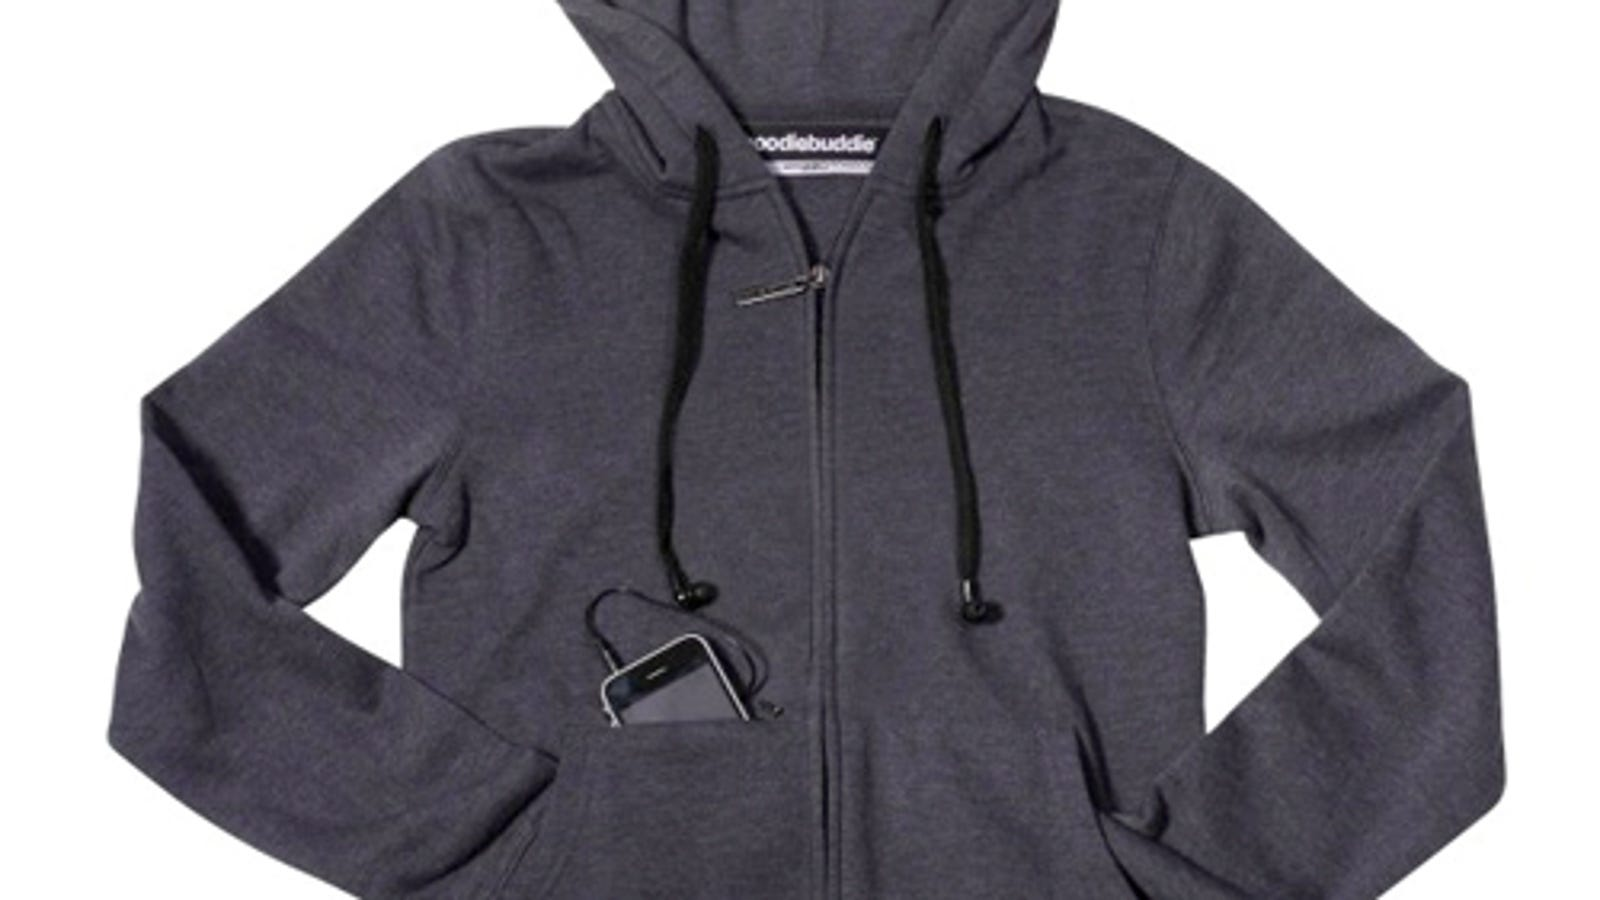 wireless adapter gor headphones - Hoodie With Earbuds Instead of Strings Is Greatest iPod Accessory of All